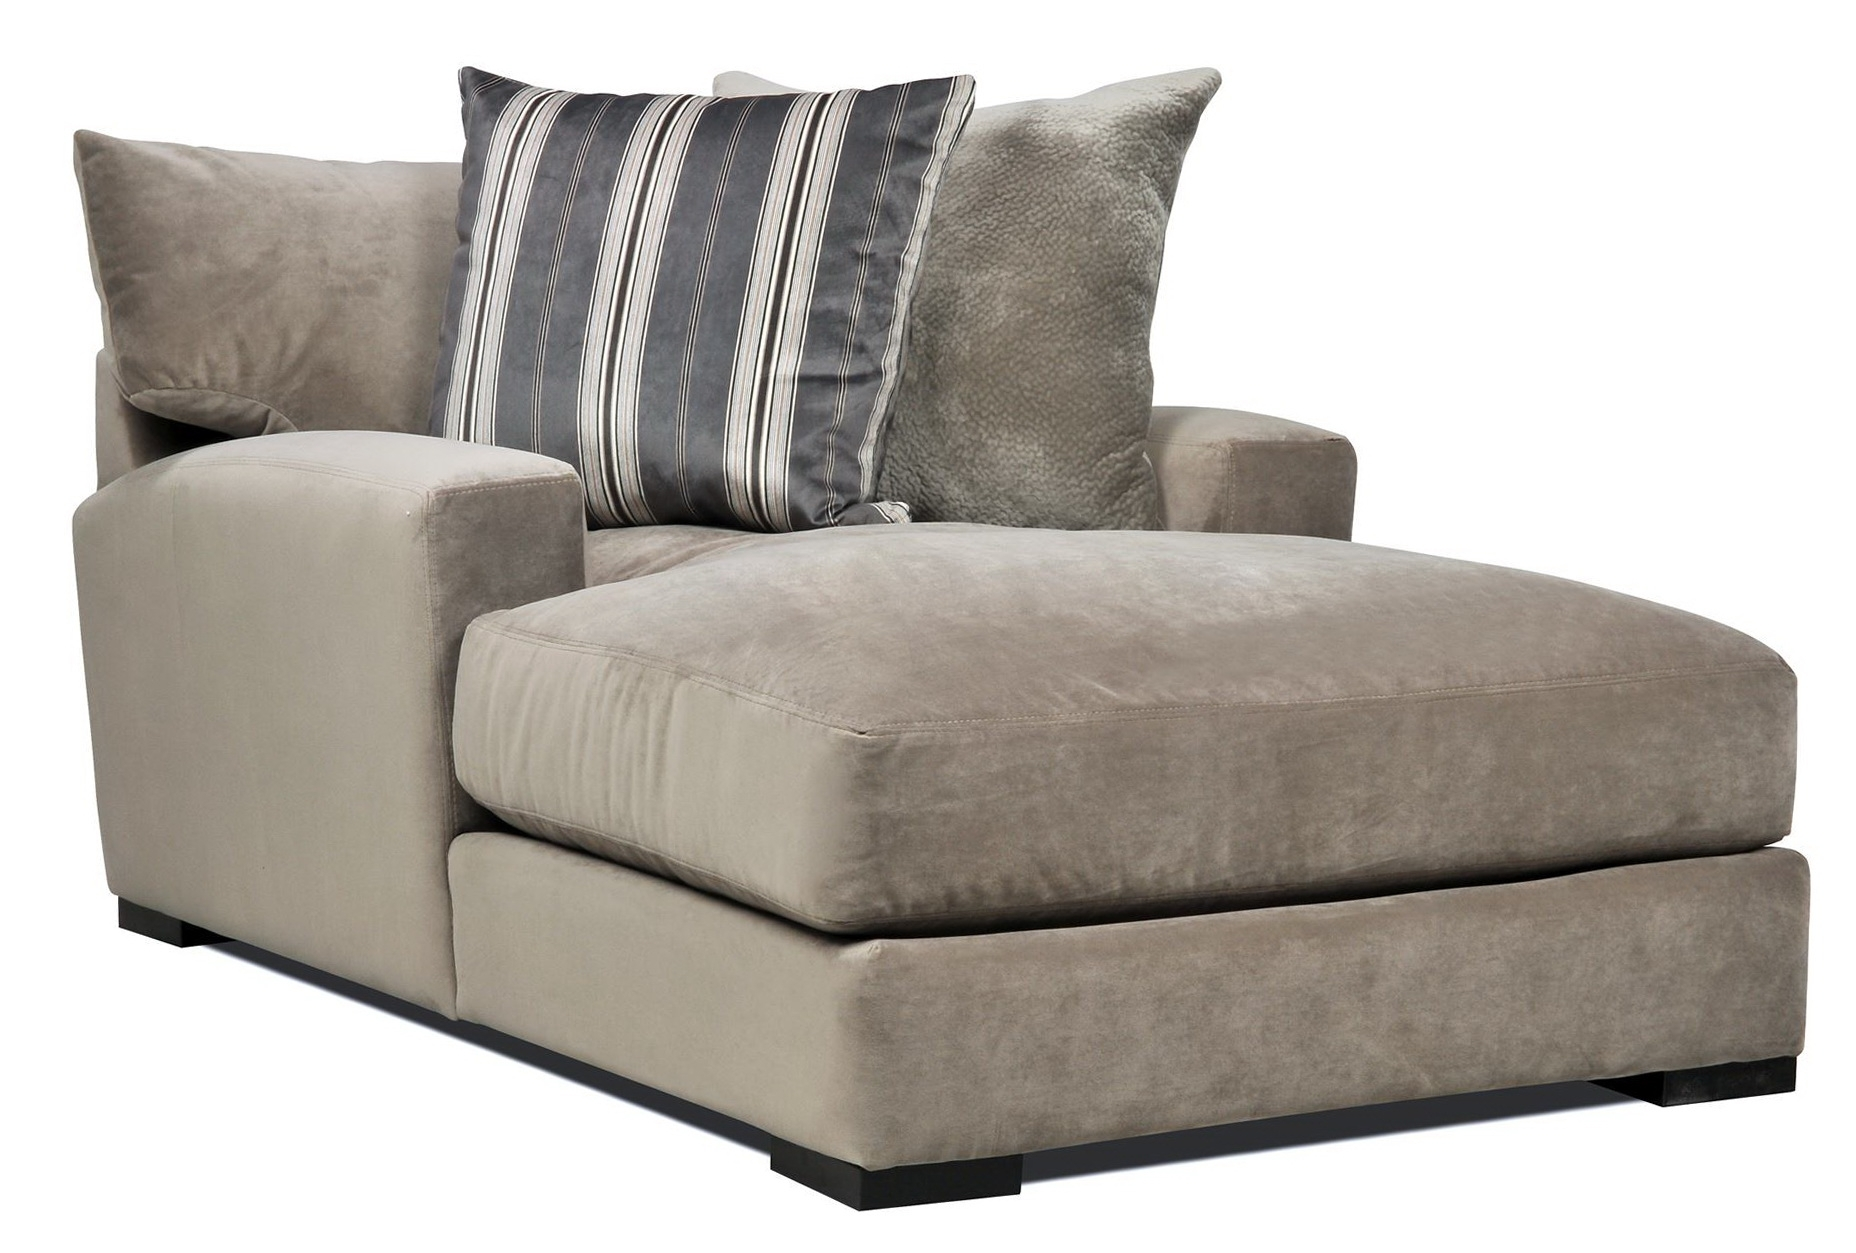 Well Liked Furniture: Double Wide Chaise Lounge Indoor With 2 Cushions With Oversized Chaise Chairs (View 6 of 15)